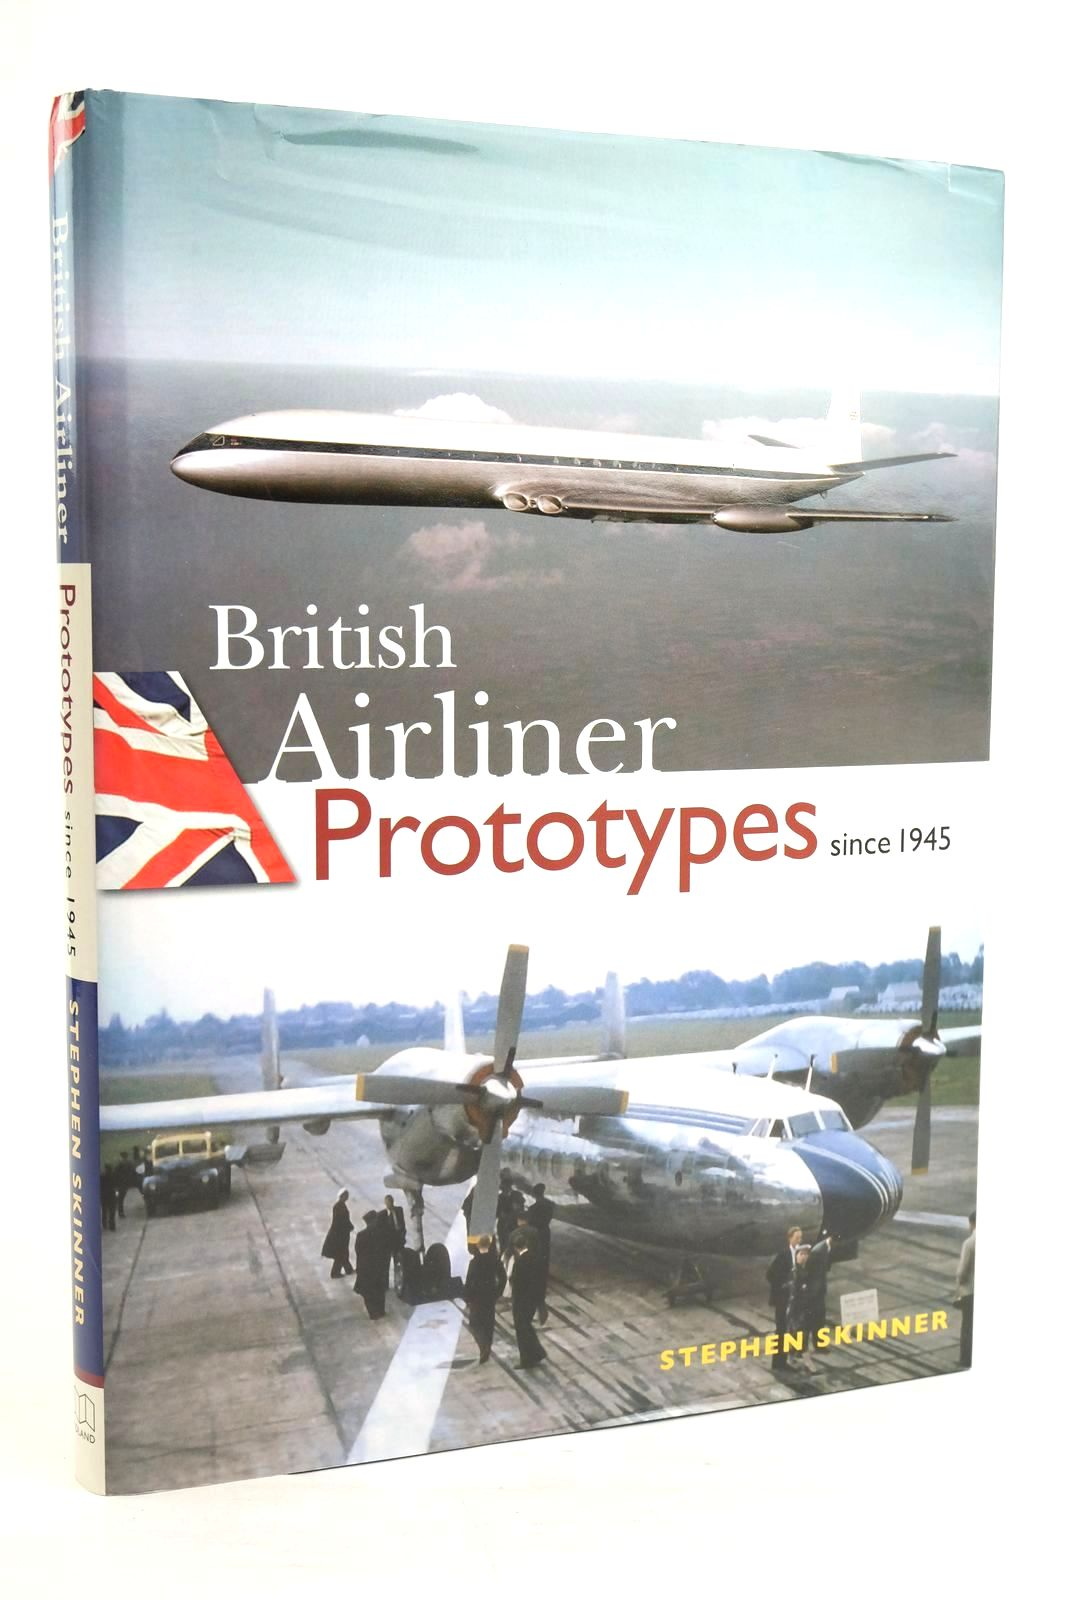 Photo of BRITISH AIRLINER PROTOTYPES SINCE 1945 written by Skinner, Stephen published by Midland Publishing (STOCK CODE: 1320136)  for sale by Stella & Rose's Books